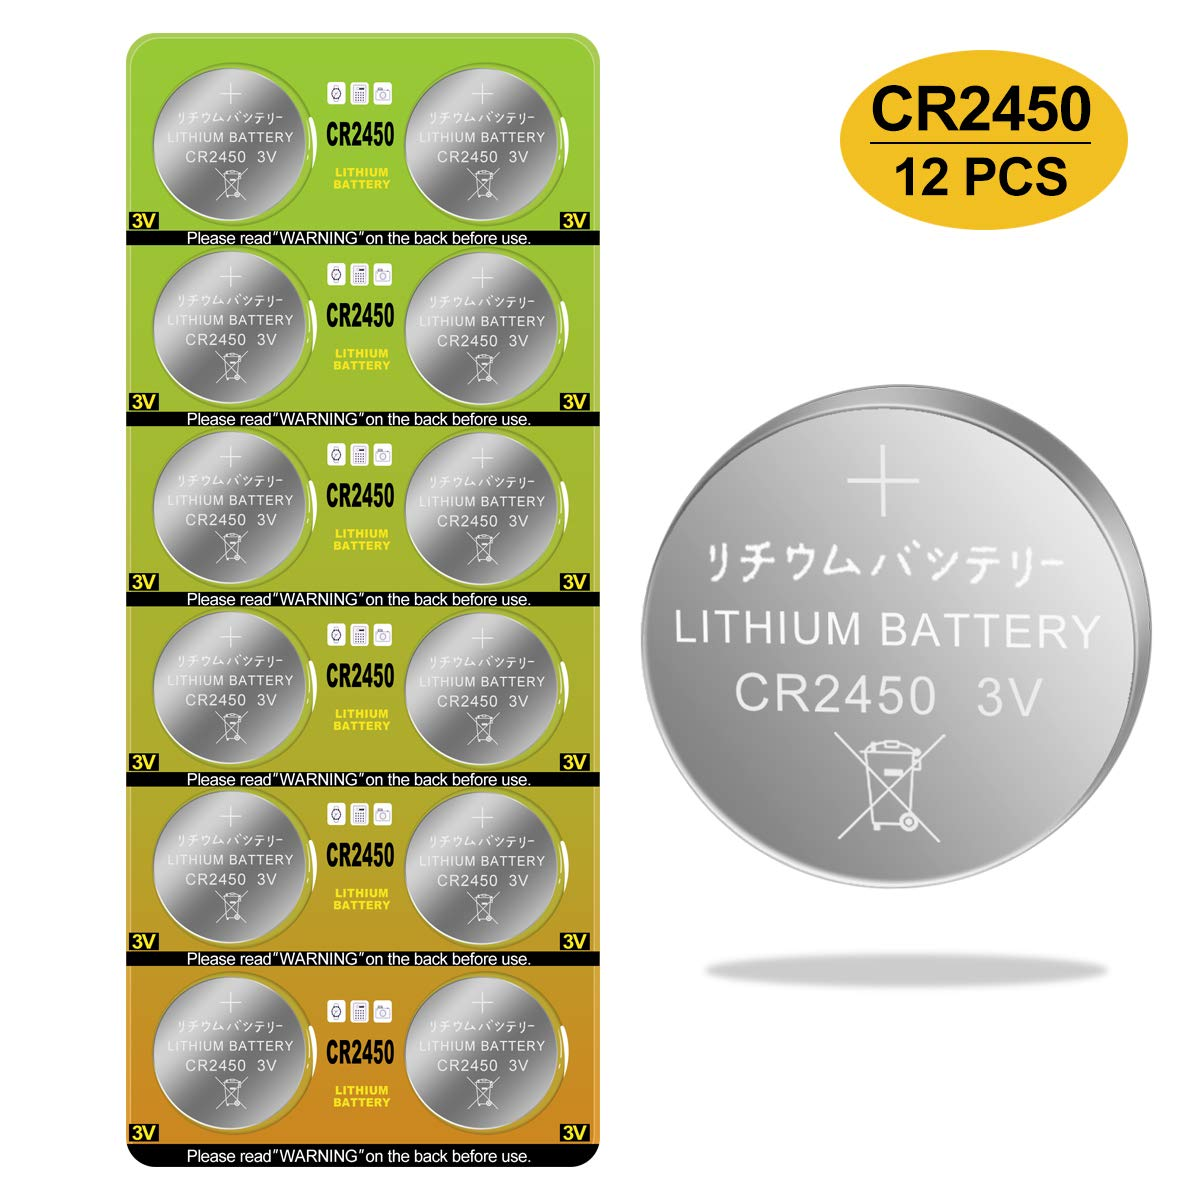 CR2450 Battery 3v Lithium Coin Cell Batteries - High Capacity 700mAh Button Cell Battery 3 Volt CR2450 Batteries for Flameless Tea Light Candles, Remote, Window Sensor 12 Pack